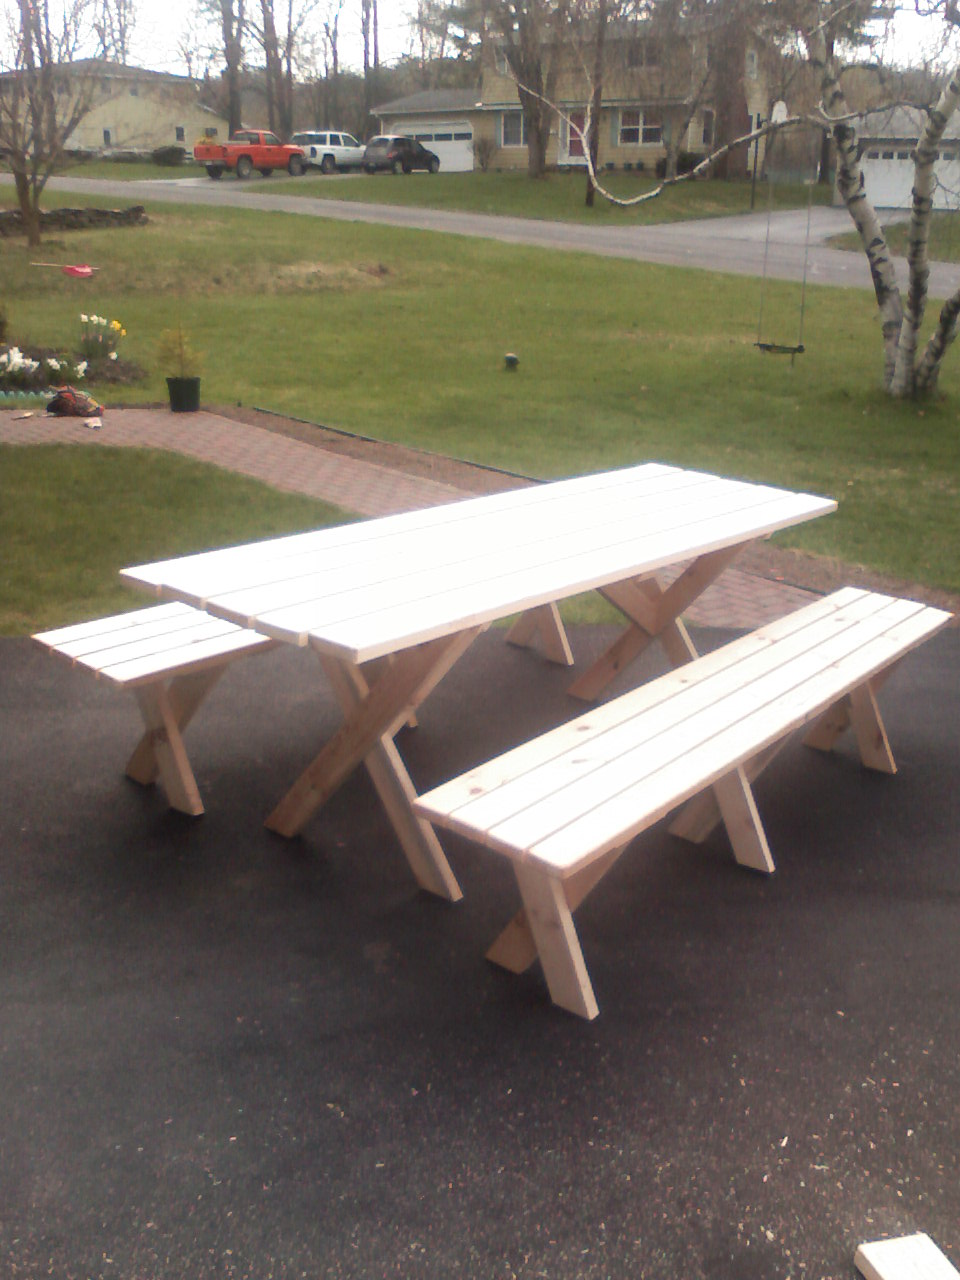 Picture of Picnic Table With Detached Benches